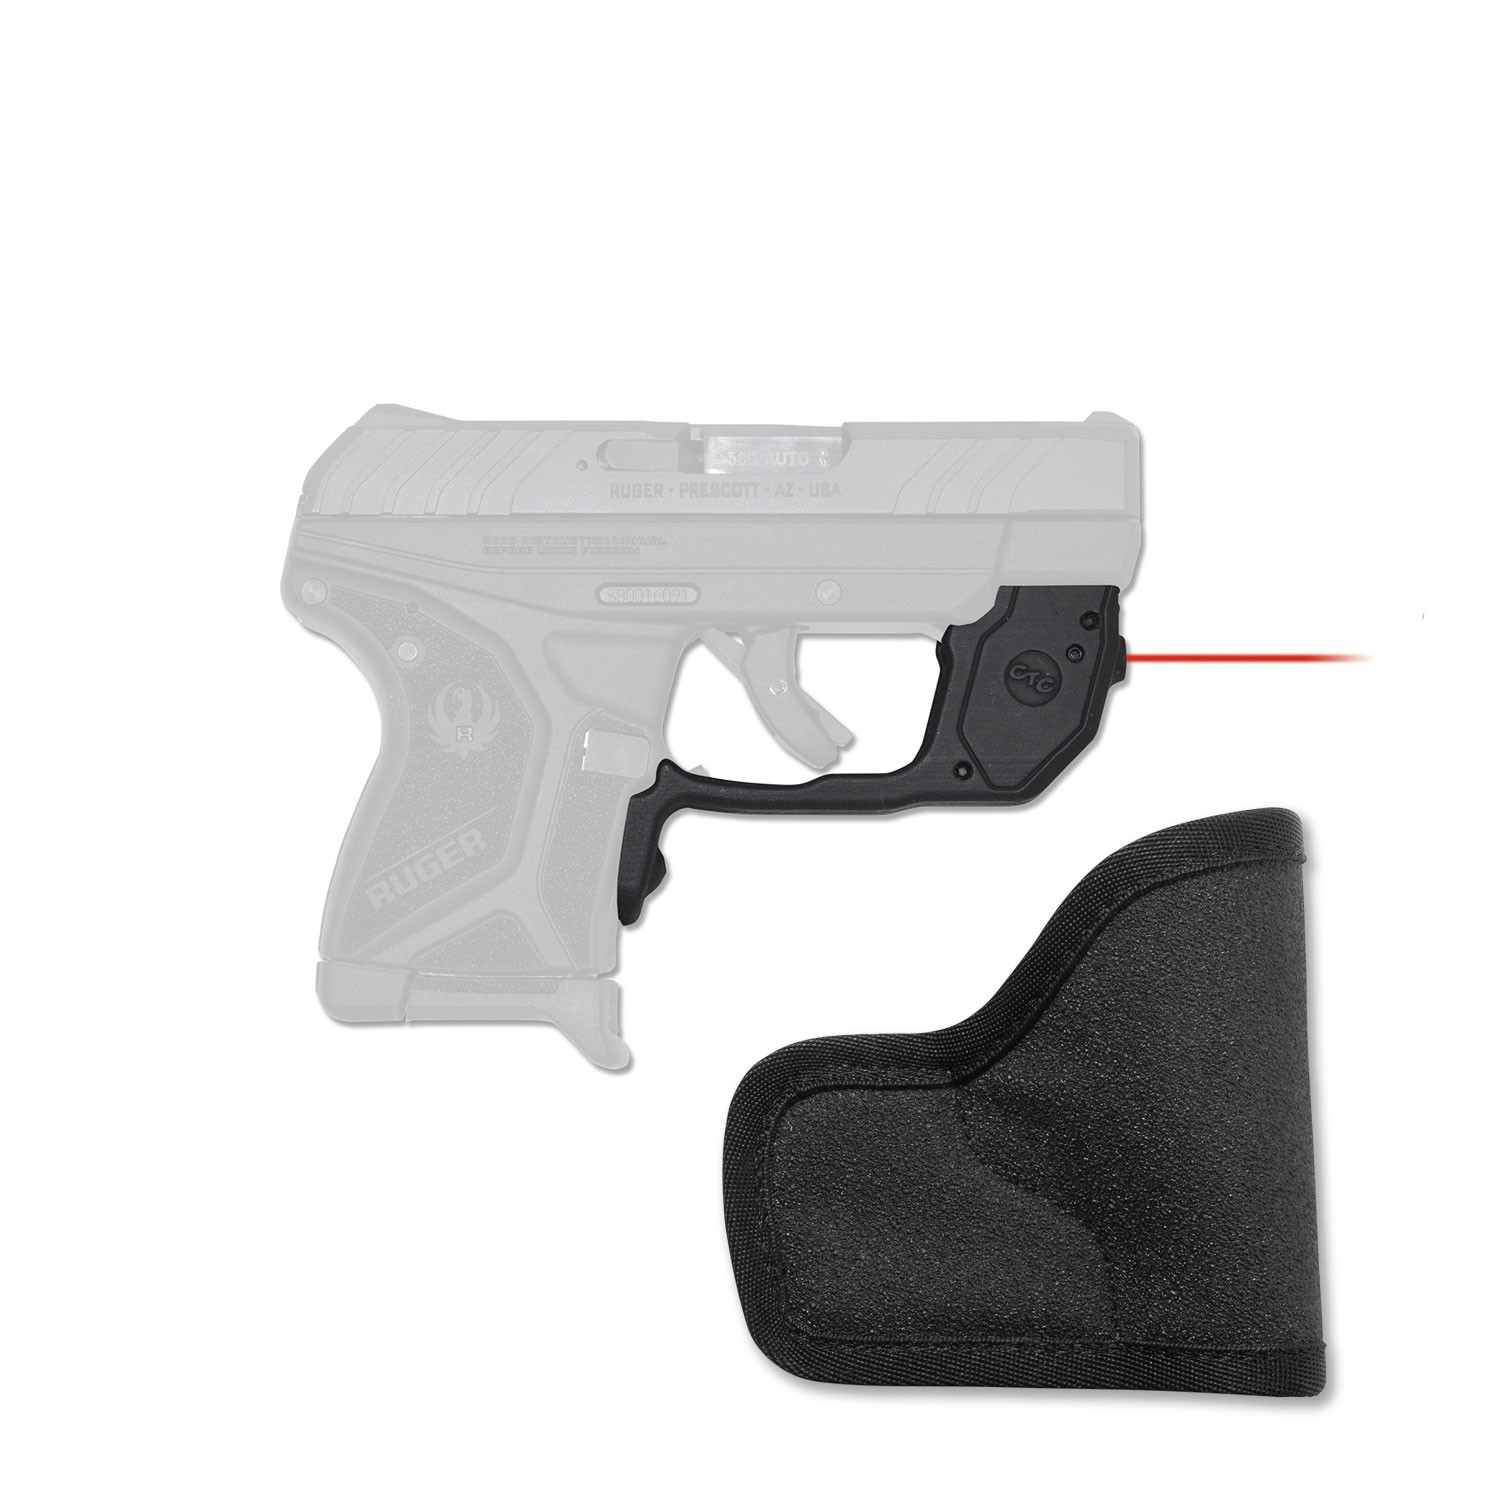 Crimson Trace Laserguard for Ruger LCP II